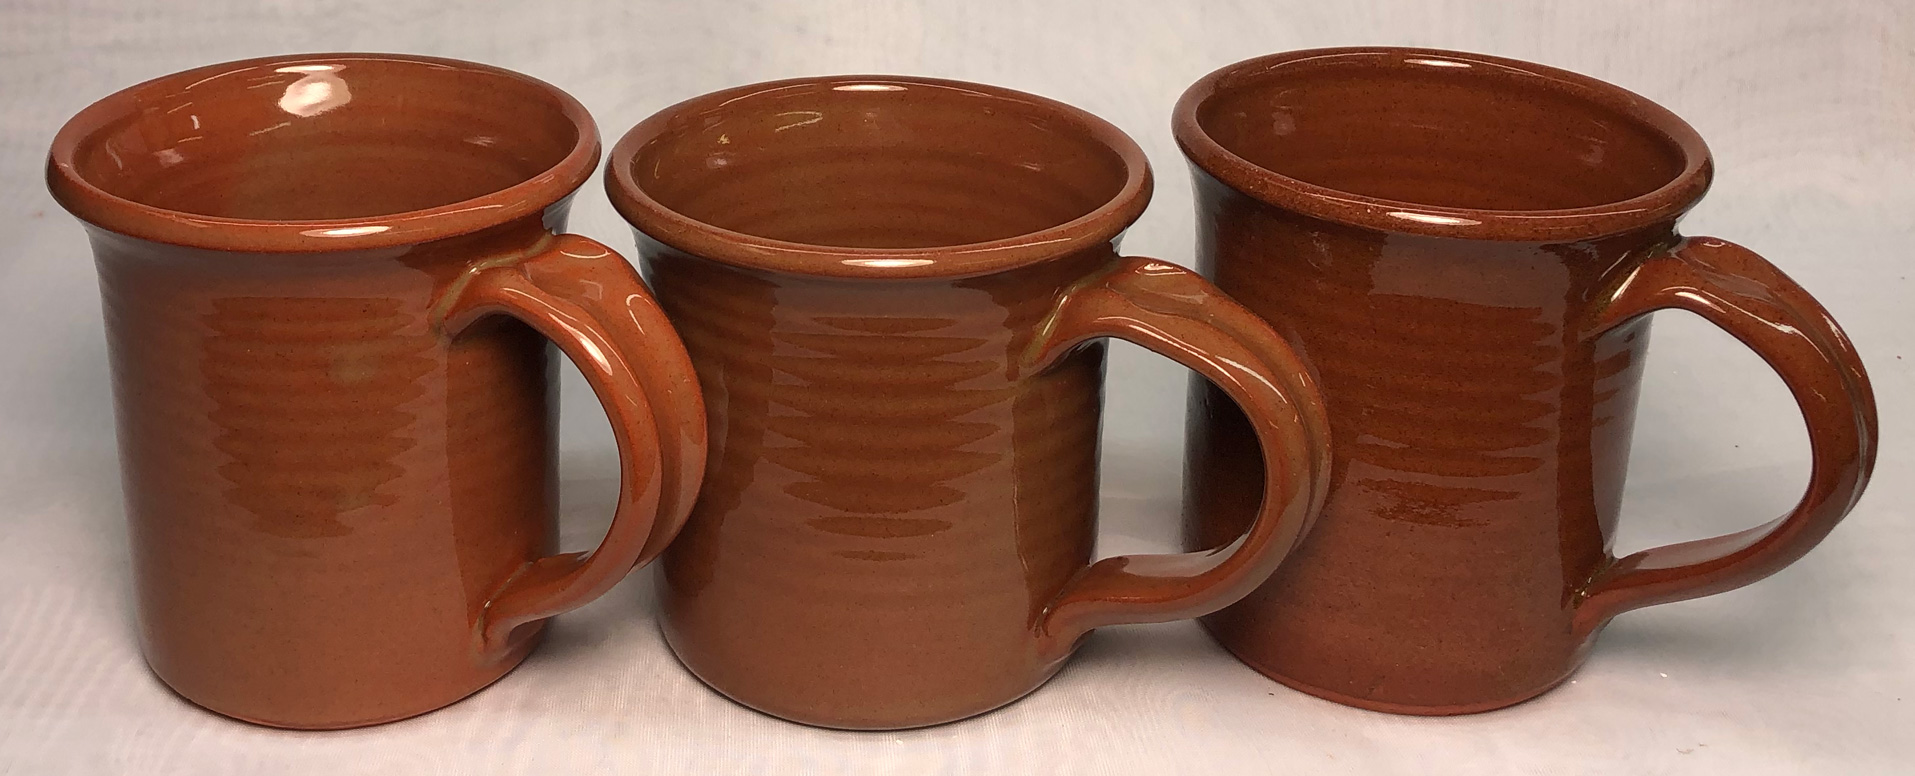 Three clear-glaze terra cotta mugs with rich red color